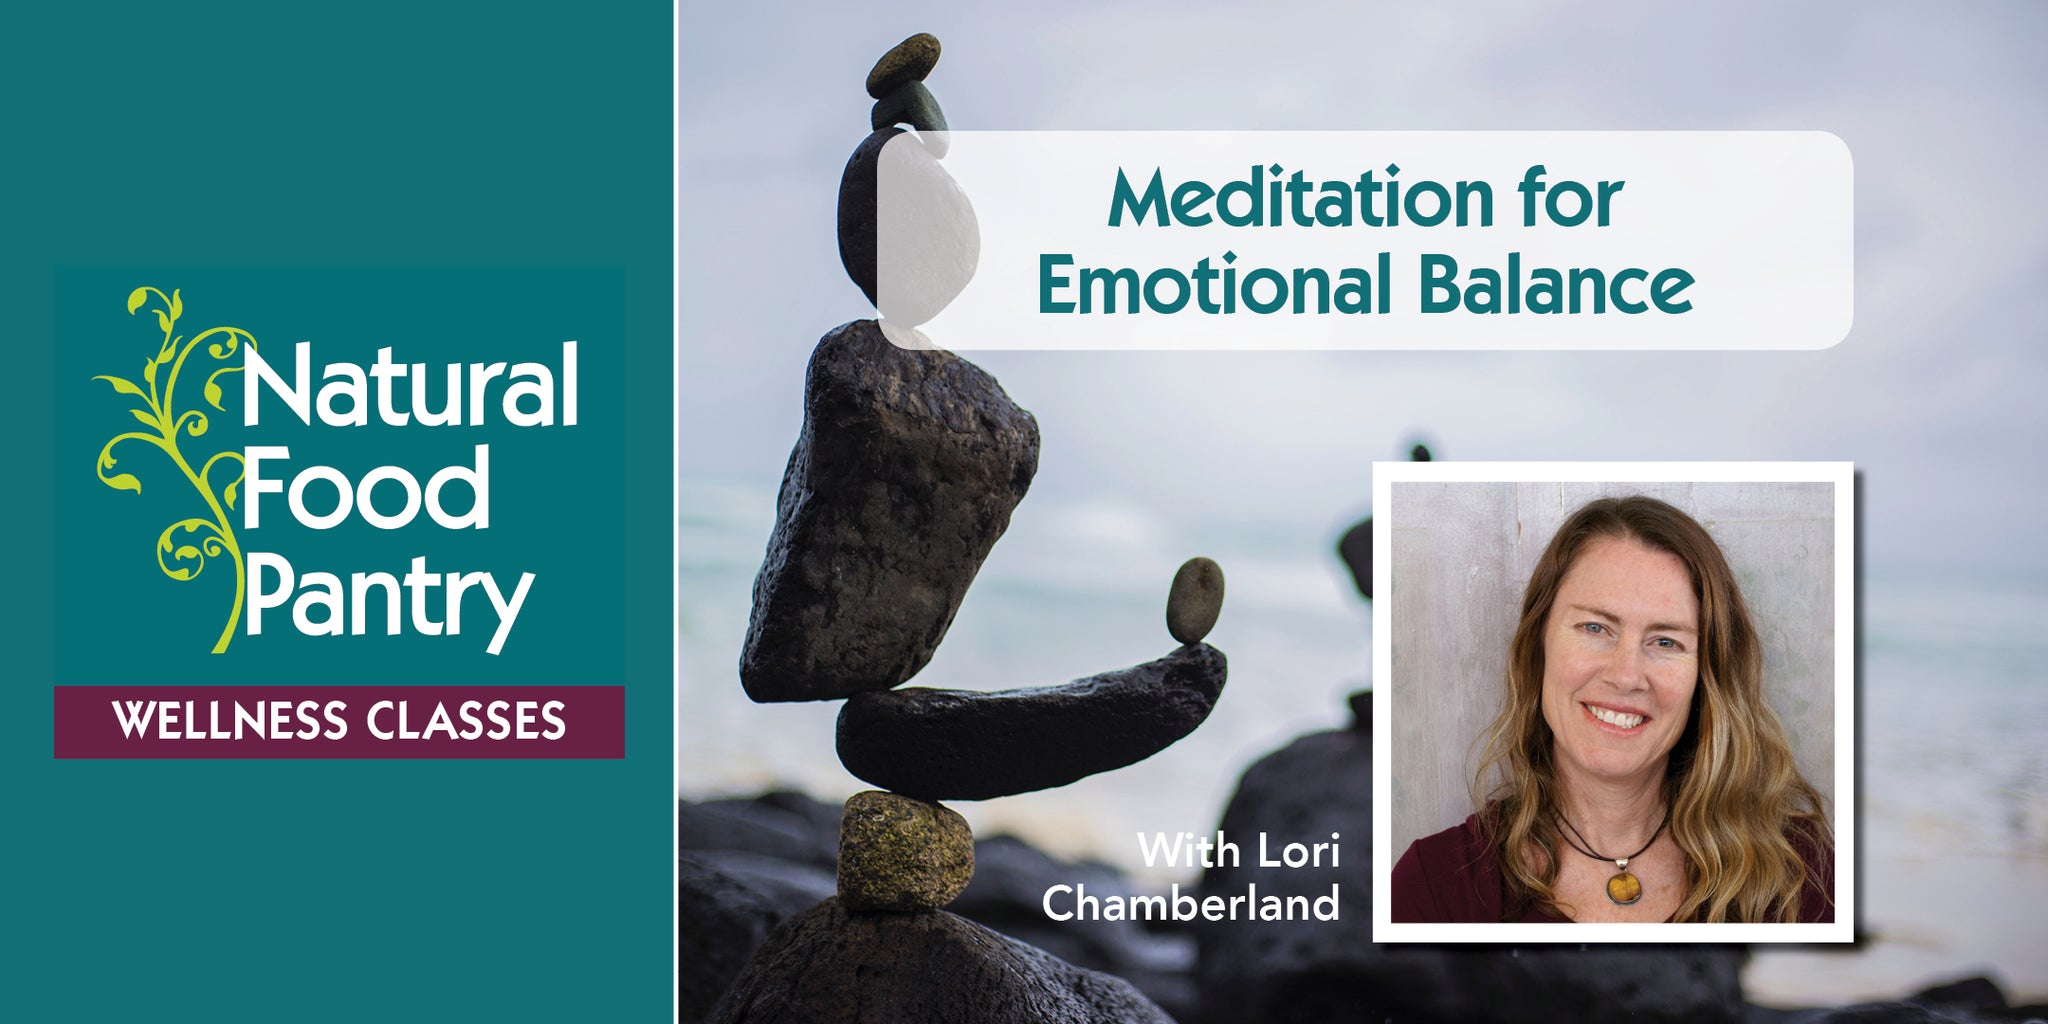 Oct 6 - Meditation for Emotional Balance